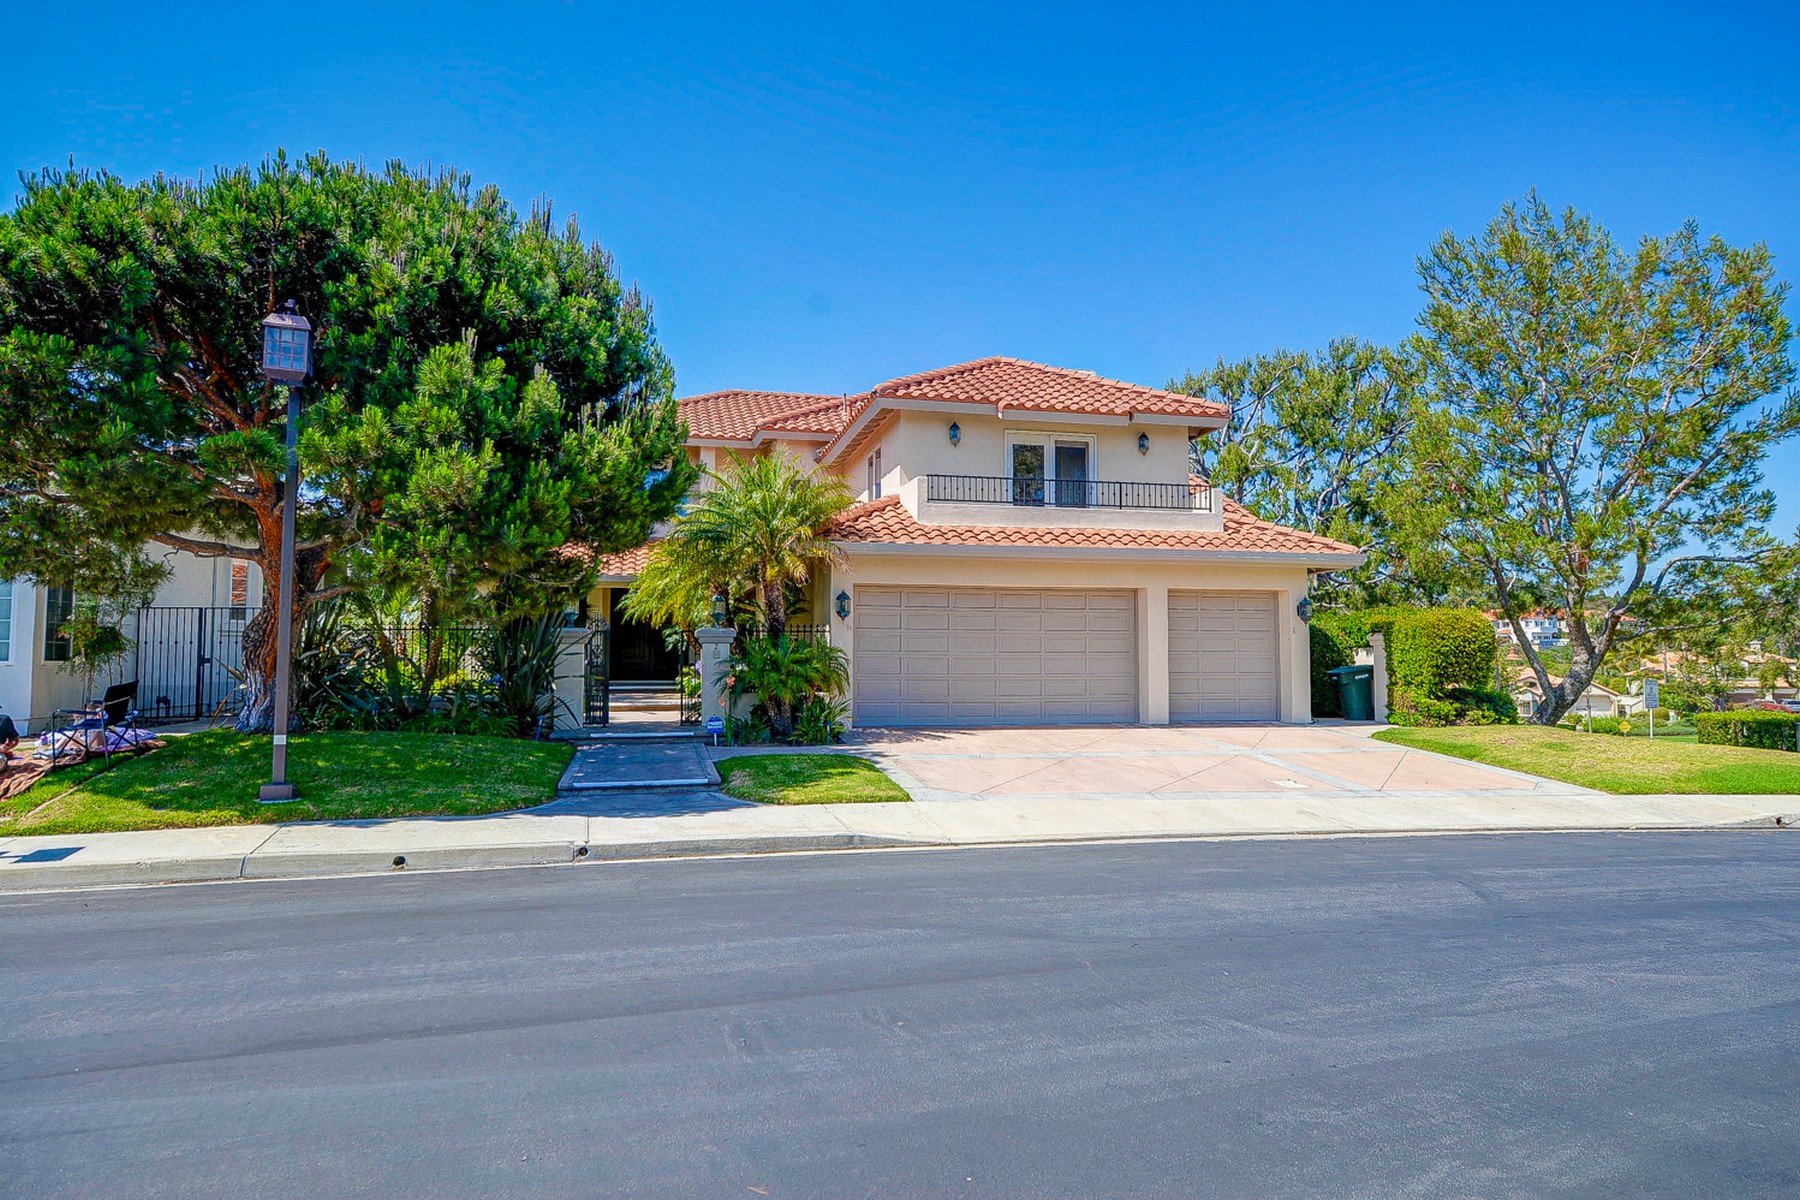 Single Family Home for Sale at 2 Soto Grande Dr. Dana Point, California 92629 United States